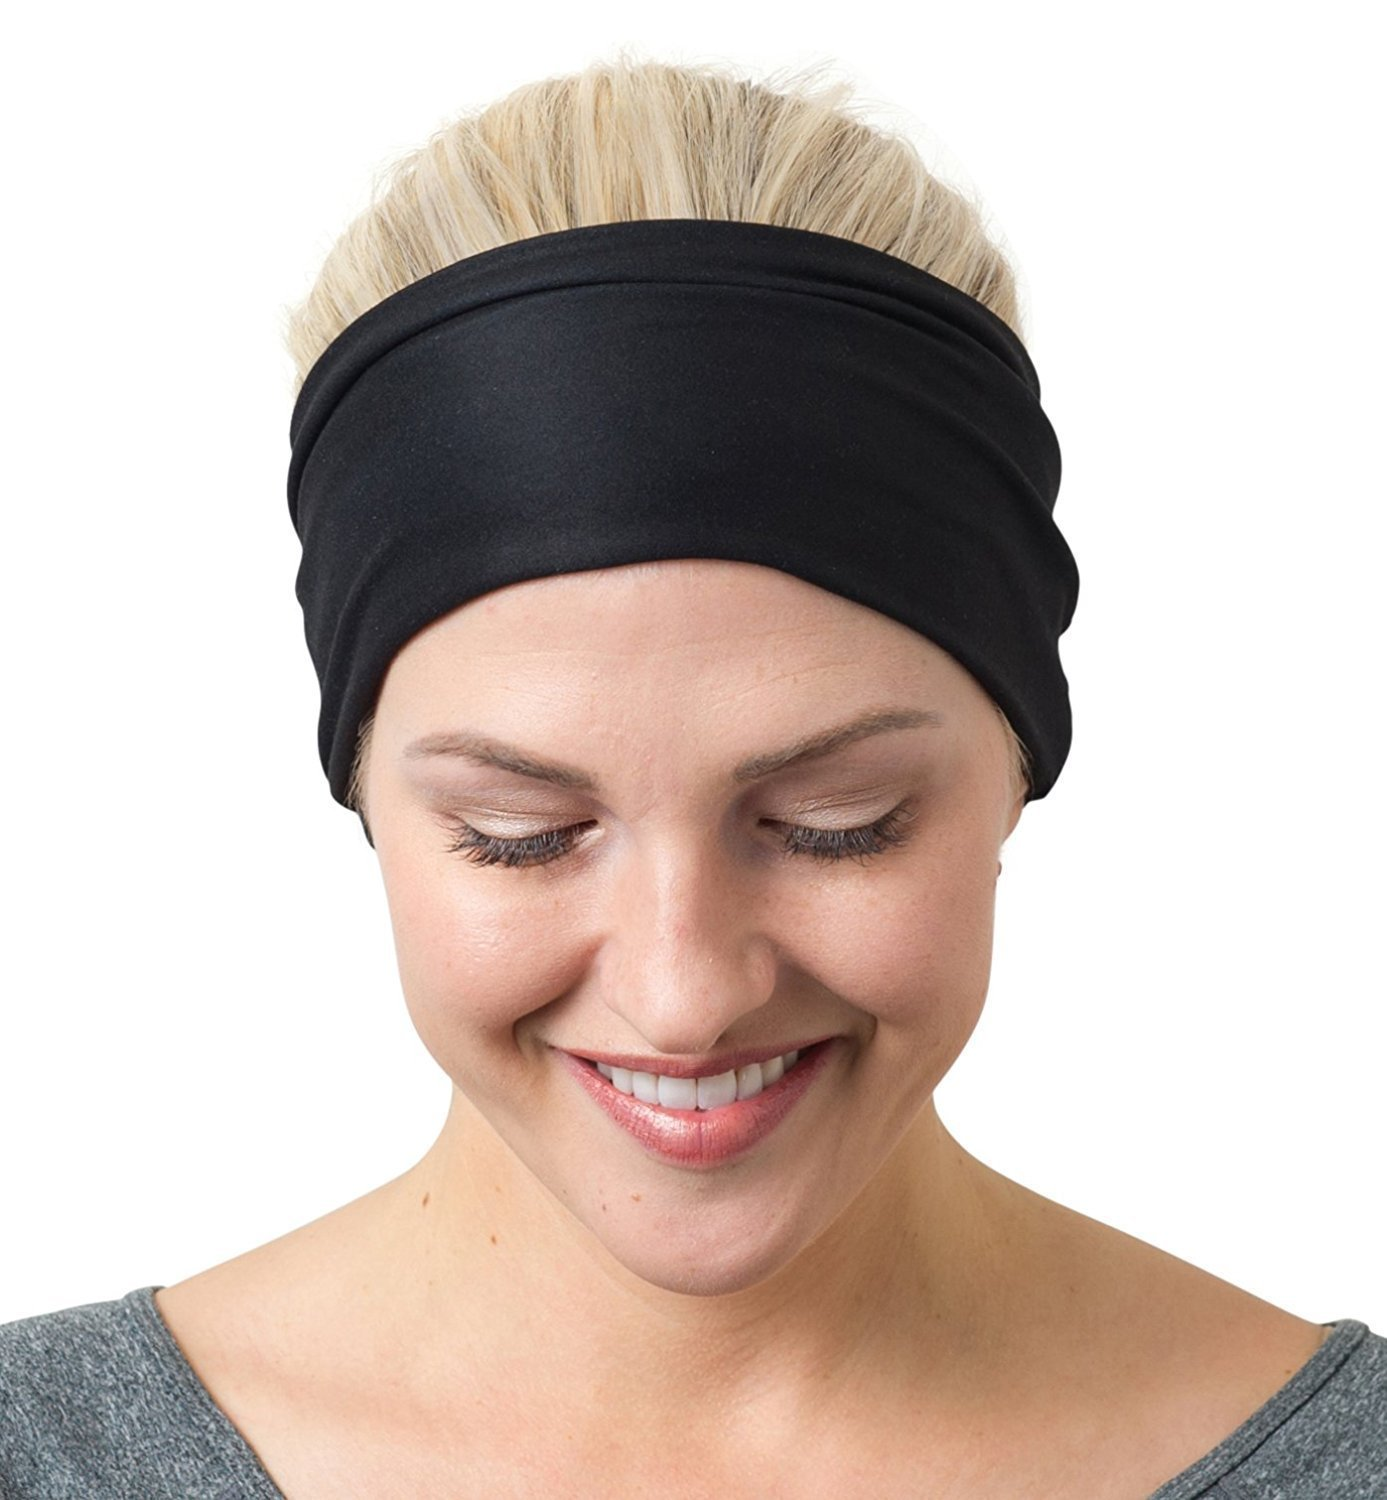 RiptGear Yoga Headbands Women Men - Wide Non Slip Design Headband Running  Yoga Fitness Fashion Other 0df0a8d8bbc